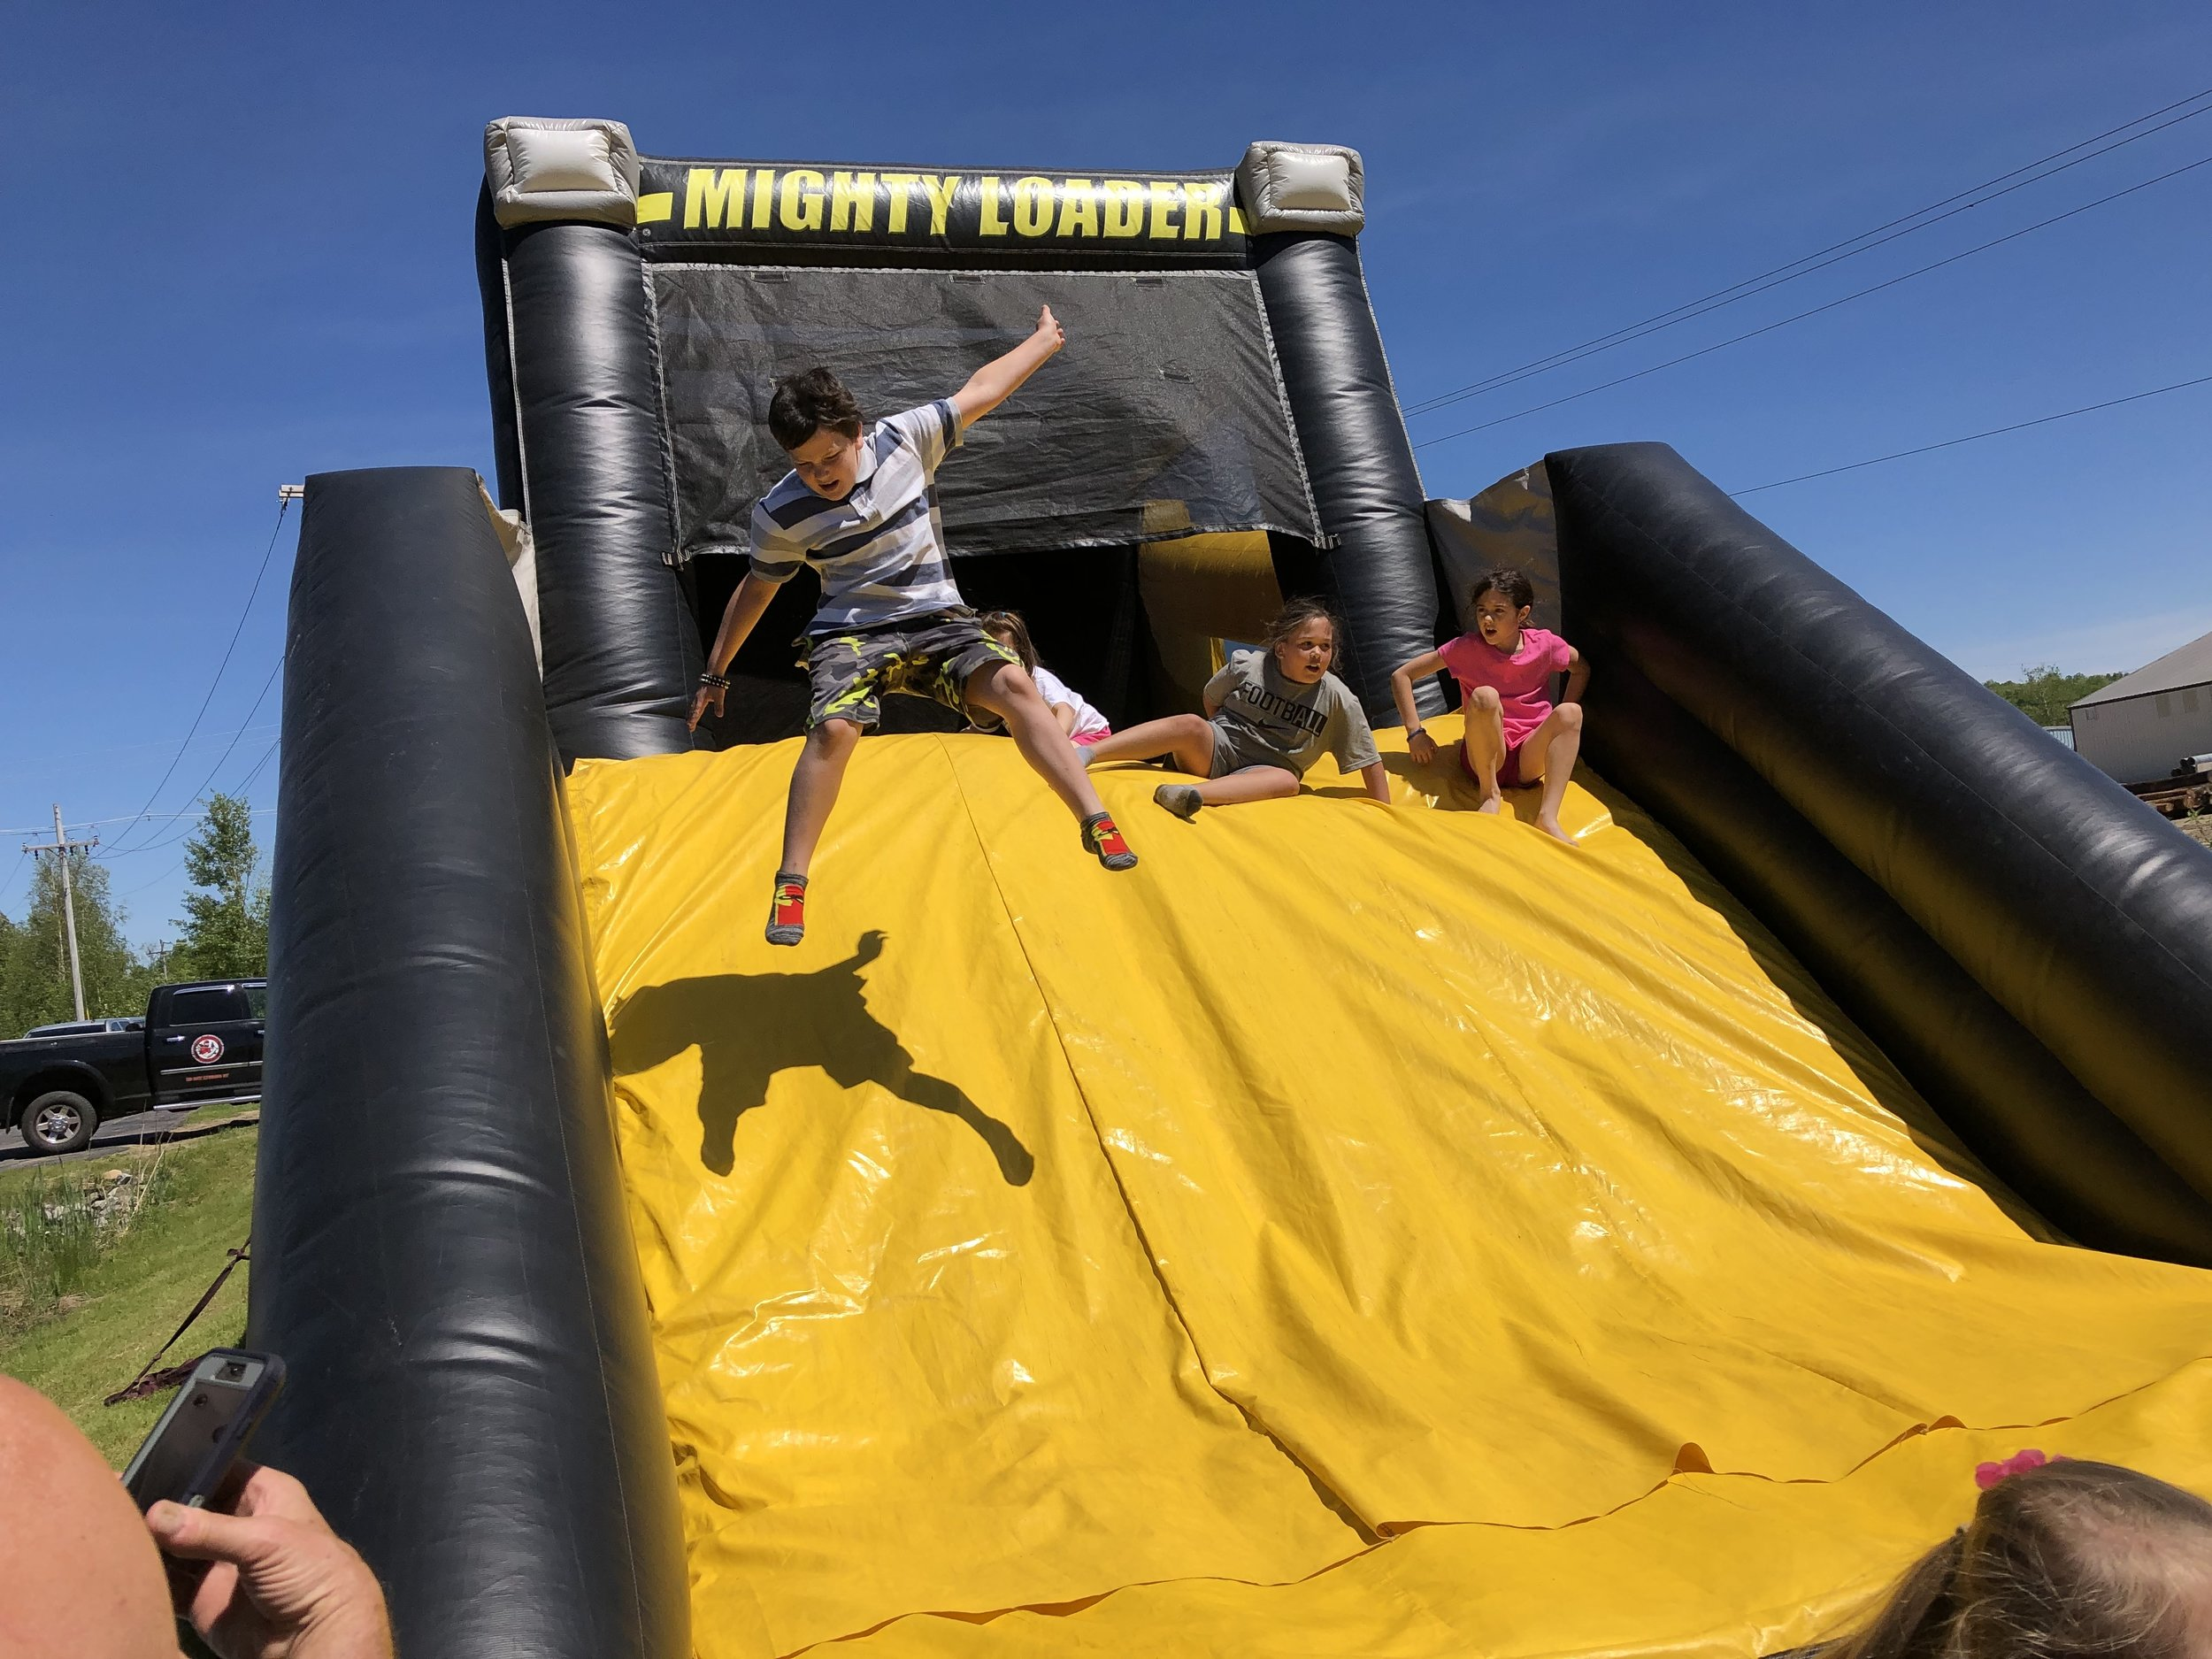 When kids at Saturday's annual Tupper Lake Police Department Bike Rodeo and Celebration of Youth weren't eating or riding their bikes in various road courses, they were probably bouncing, sliding and jumping on three large inflatable attractions constructed on the grounds of the Emergency Services Building, as these photos showed.